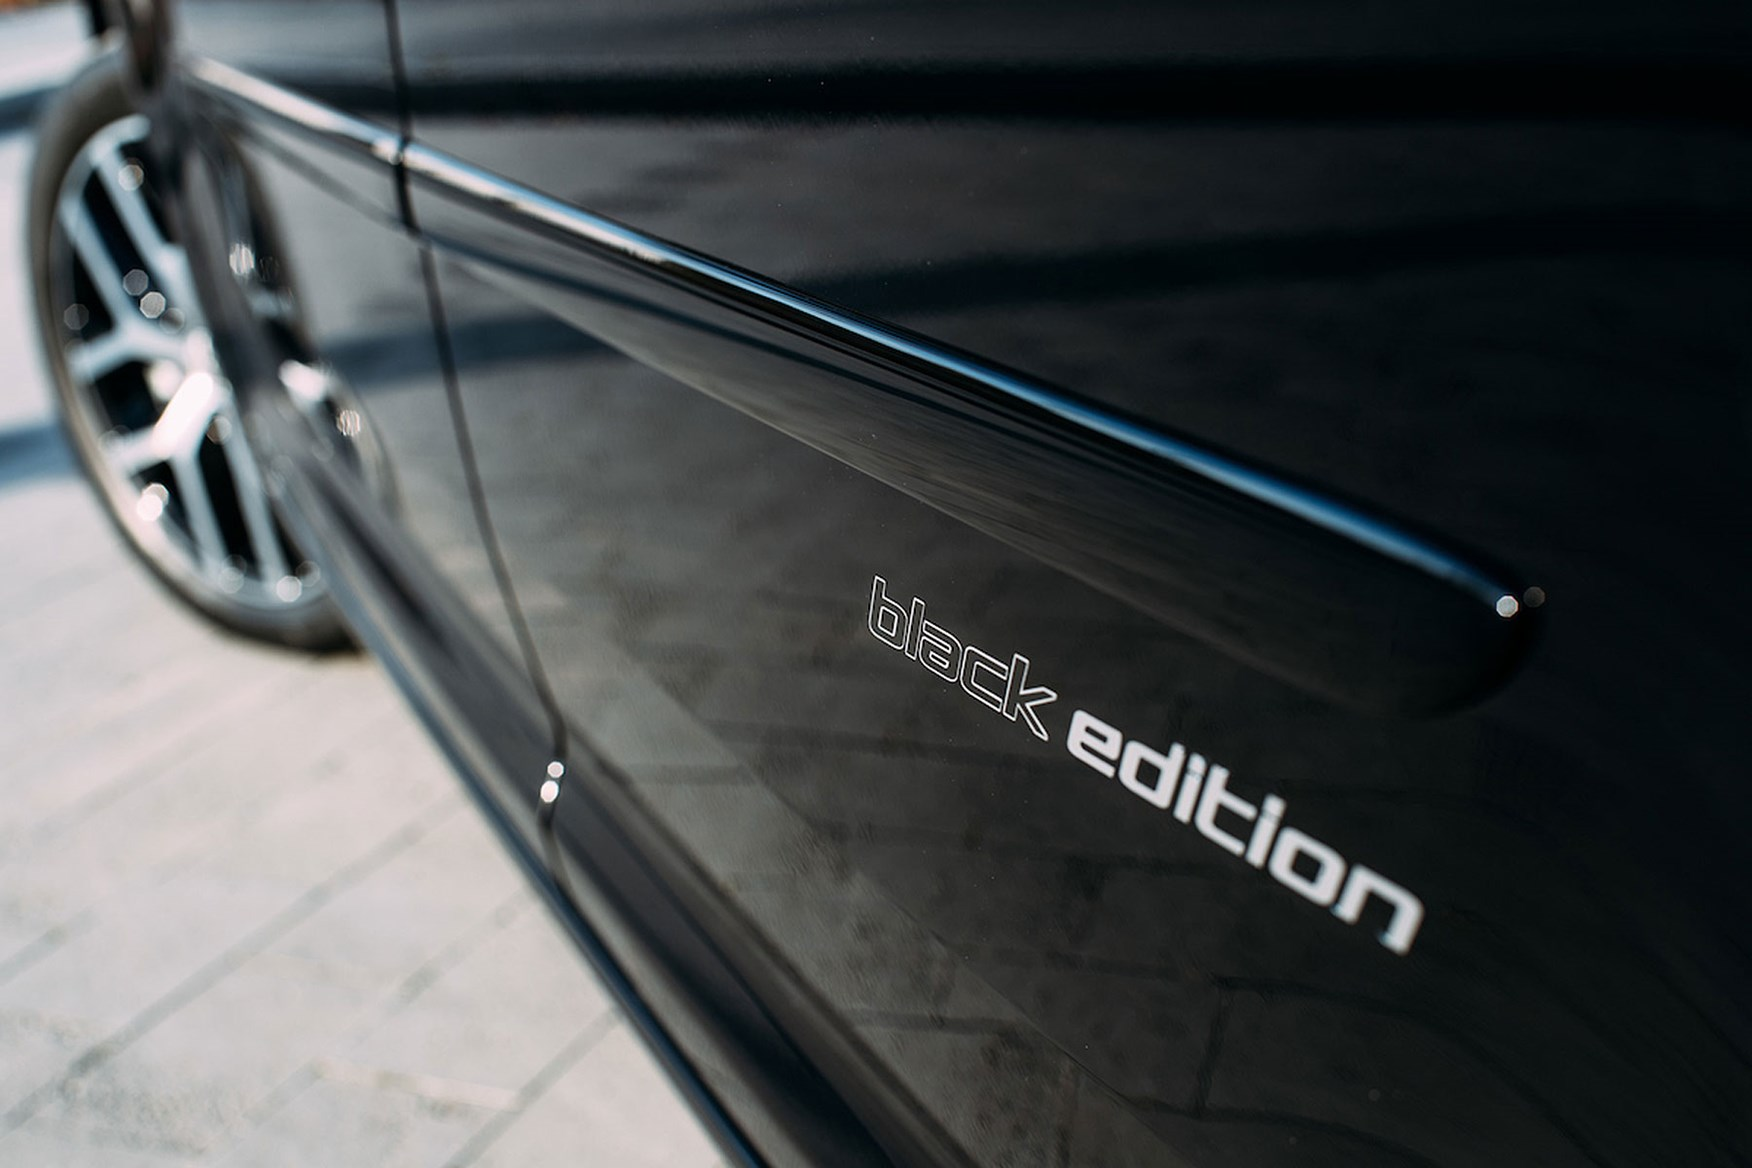 VW Caddy Black Edition review - Black Edition graphics on side, 2017